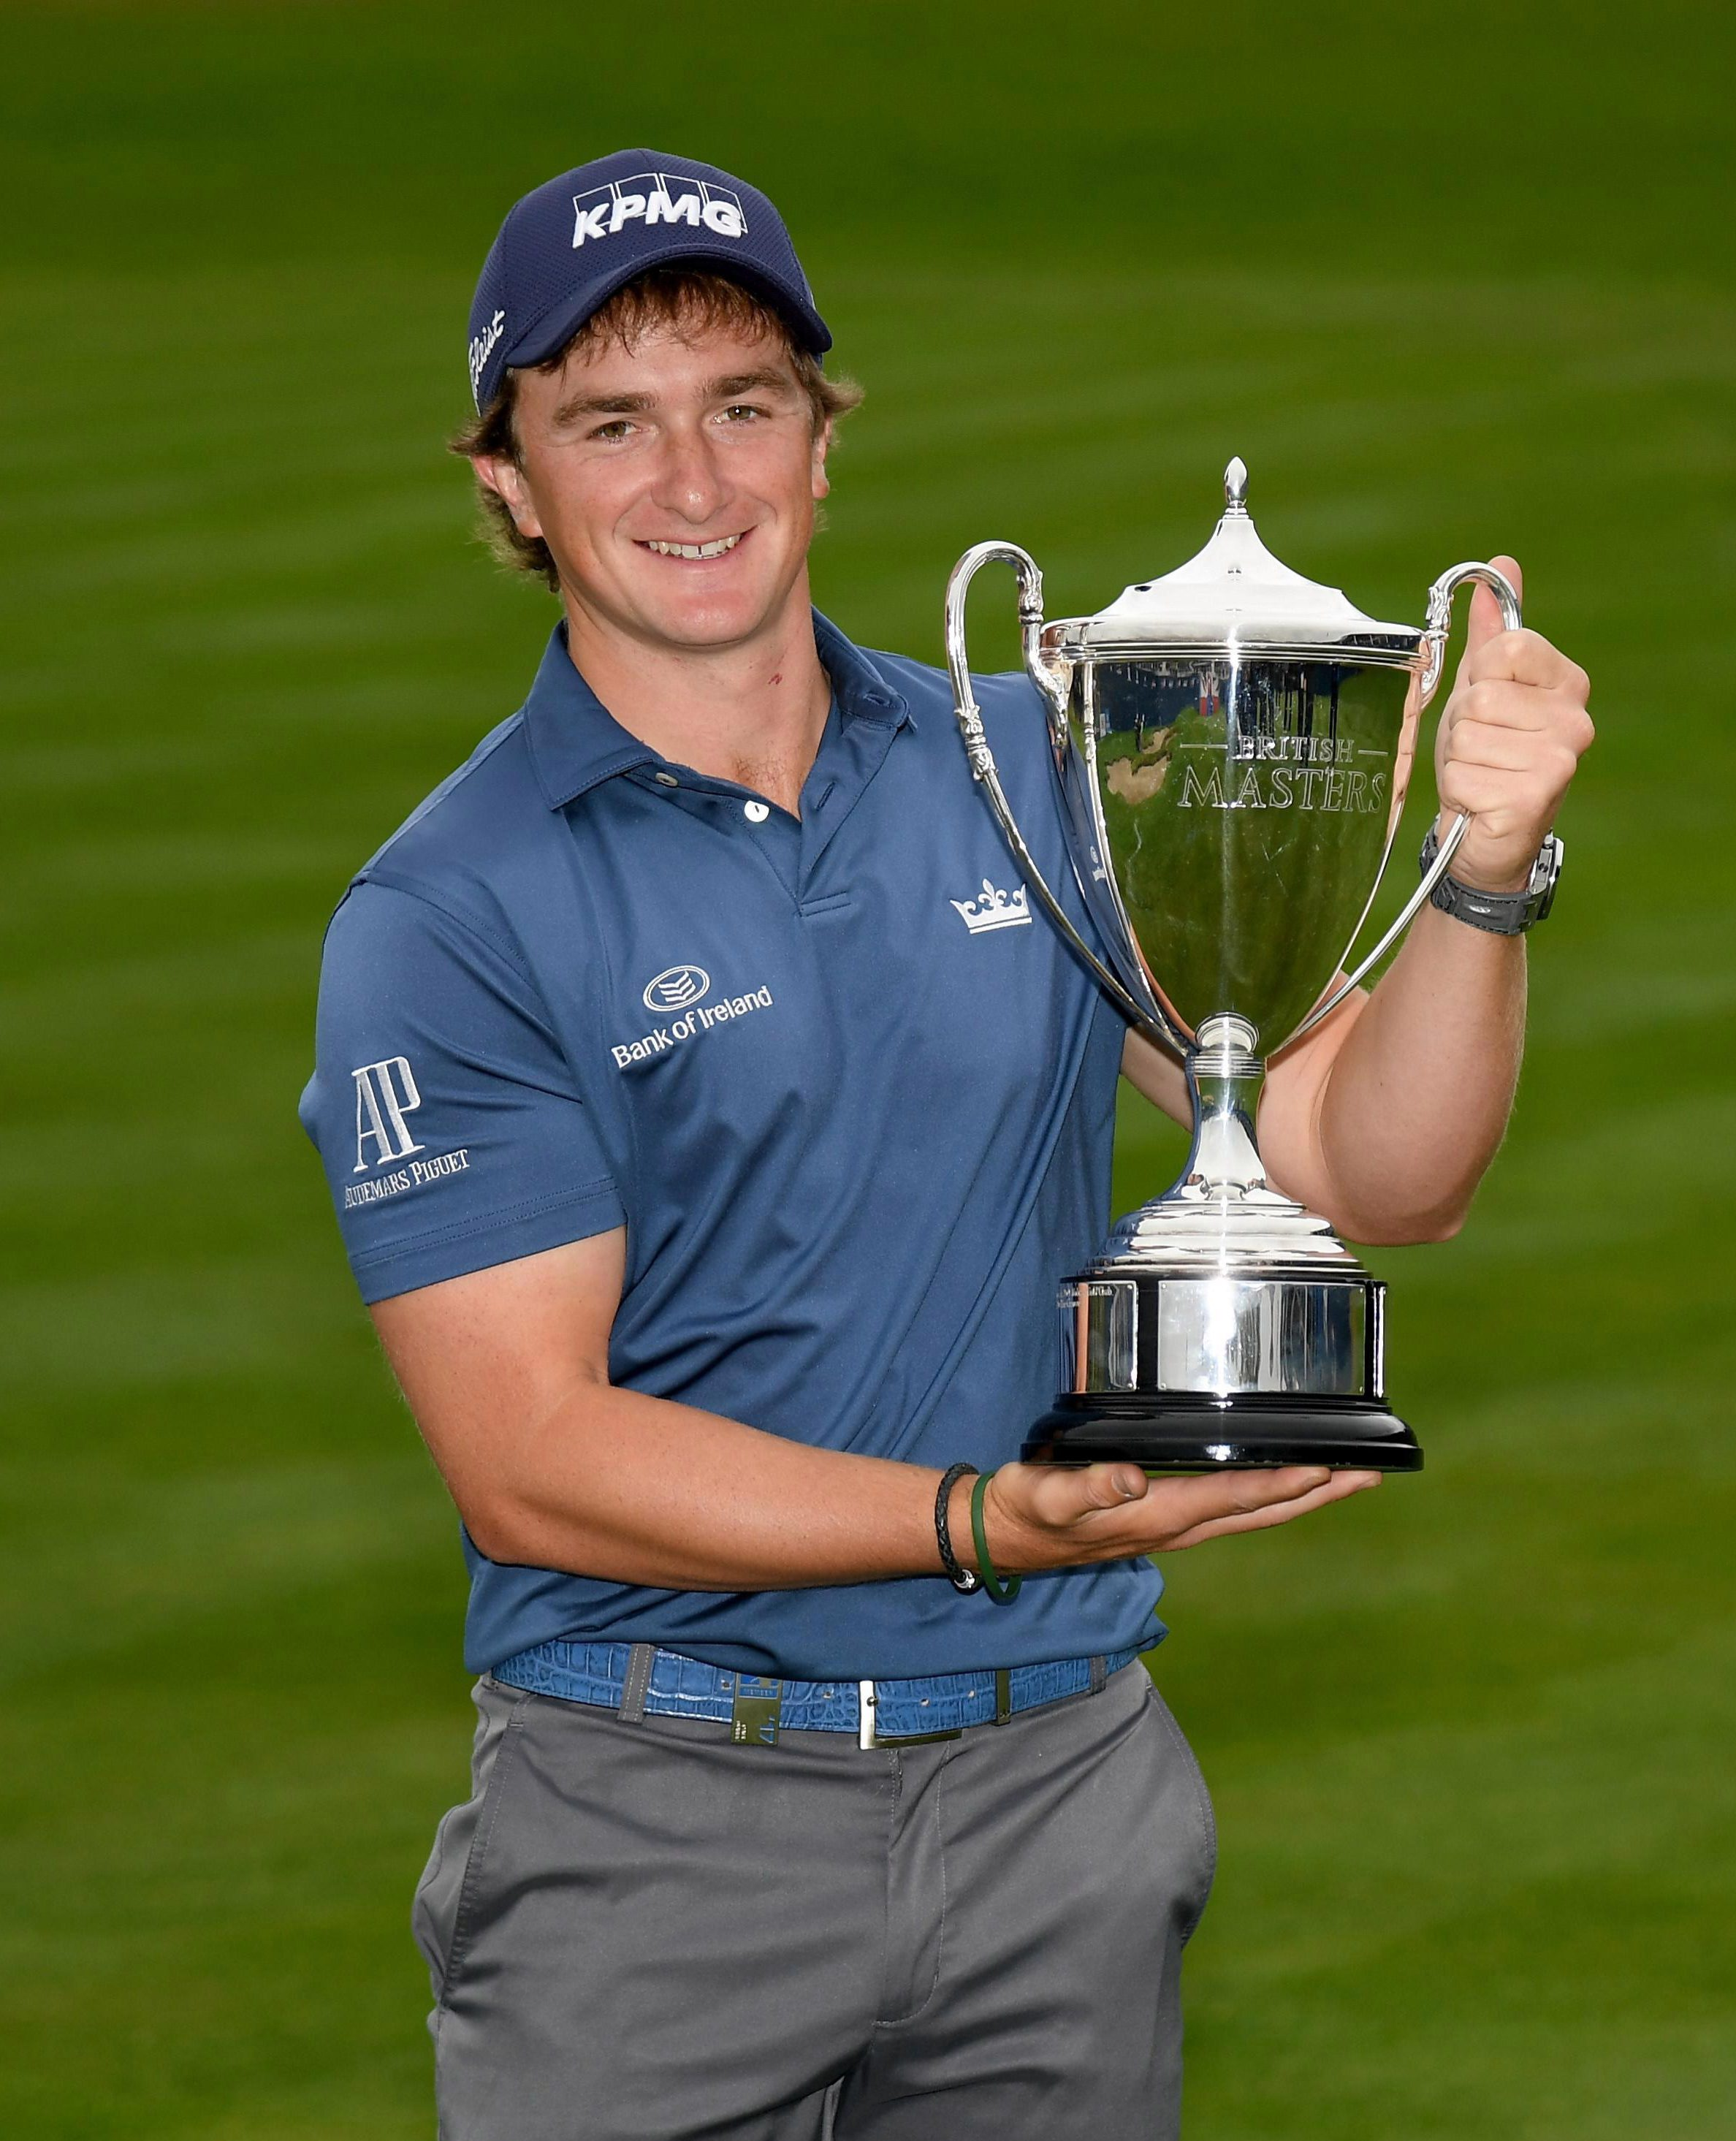 Paul Dunne shot the lowest round of the week with a nine- under-par 61